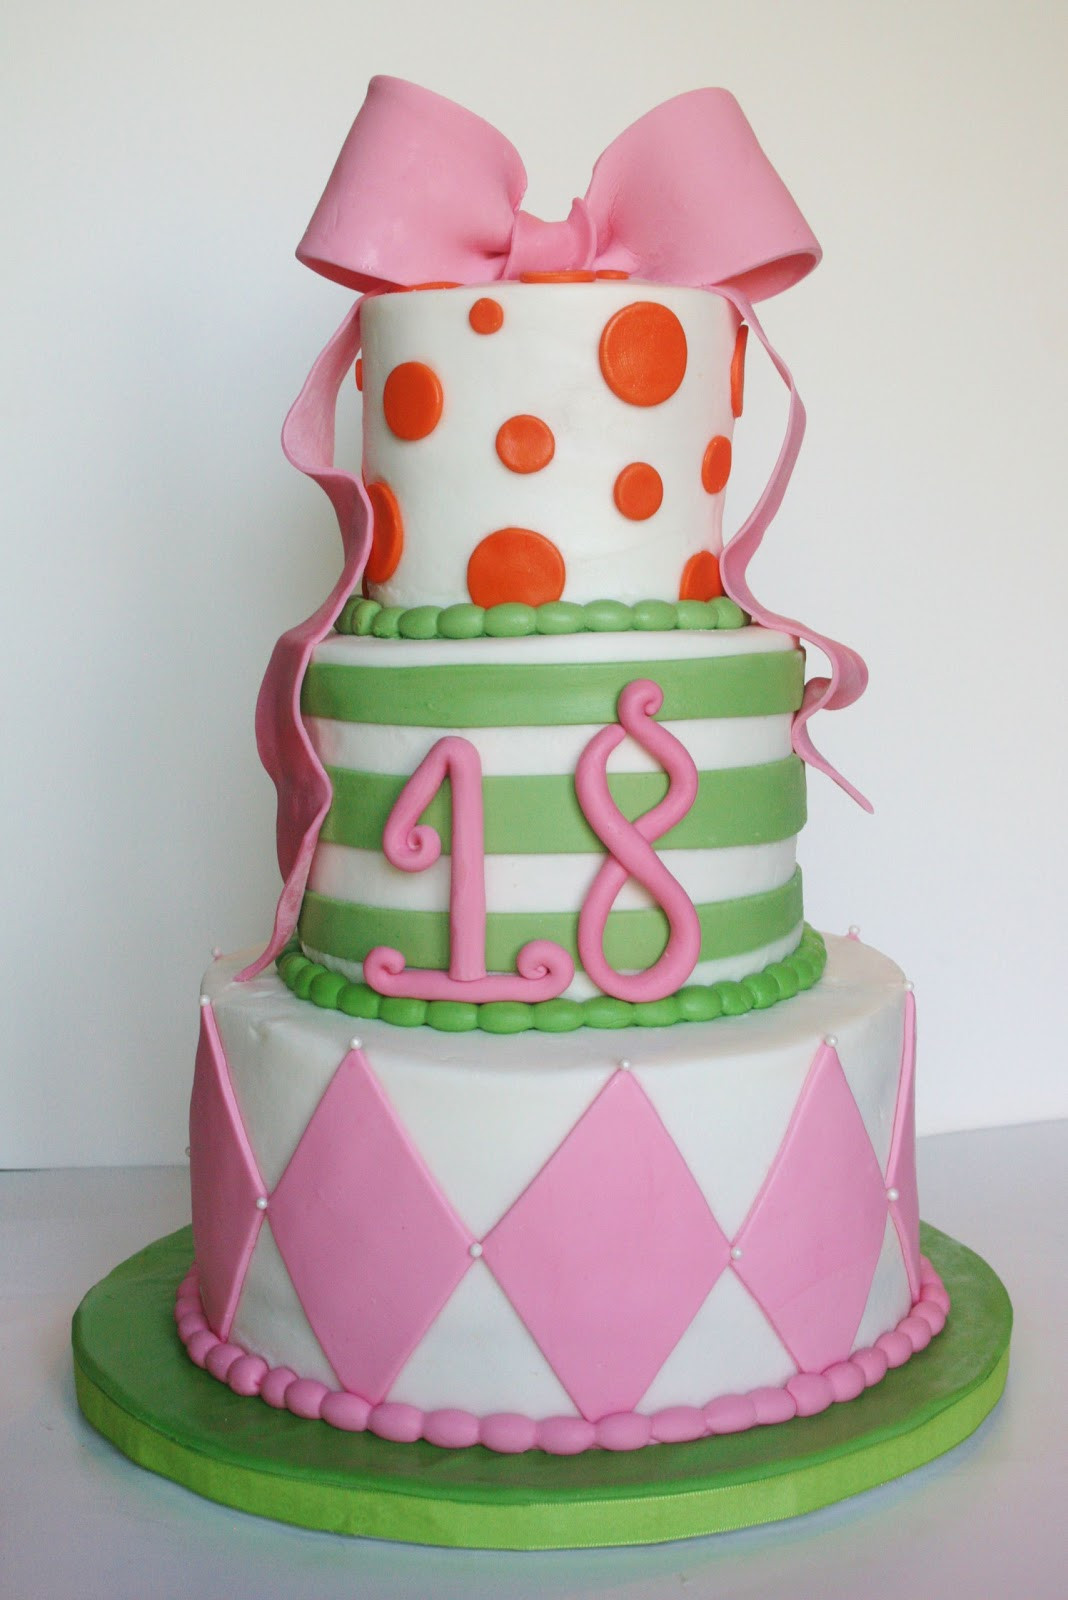 Best ideas about 18 Birthday Cake . Save or Pin And Everything Sweet Fit for an 18th Birthday Now.